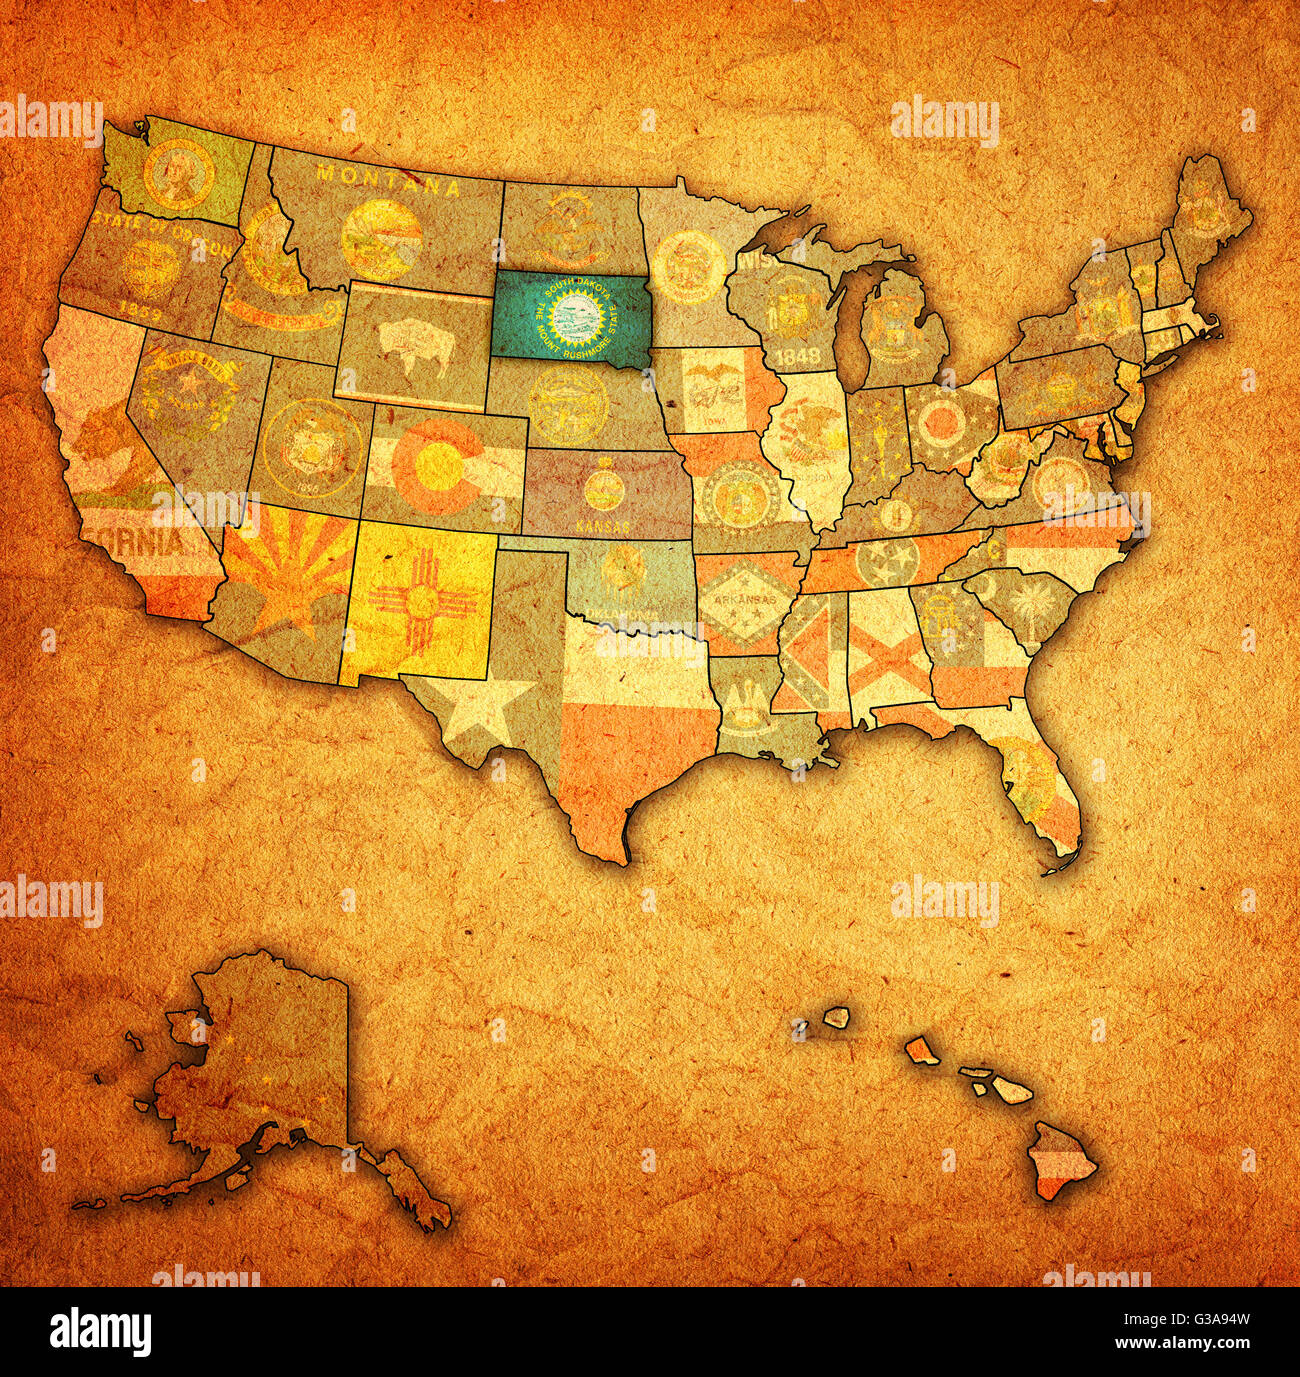 South Dakota On Old Vintage Map Of Usa With State Borders Stock - South dakota in usa map